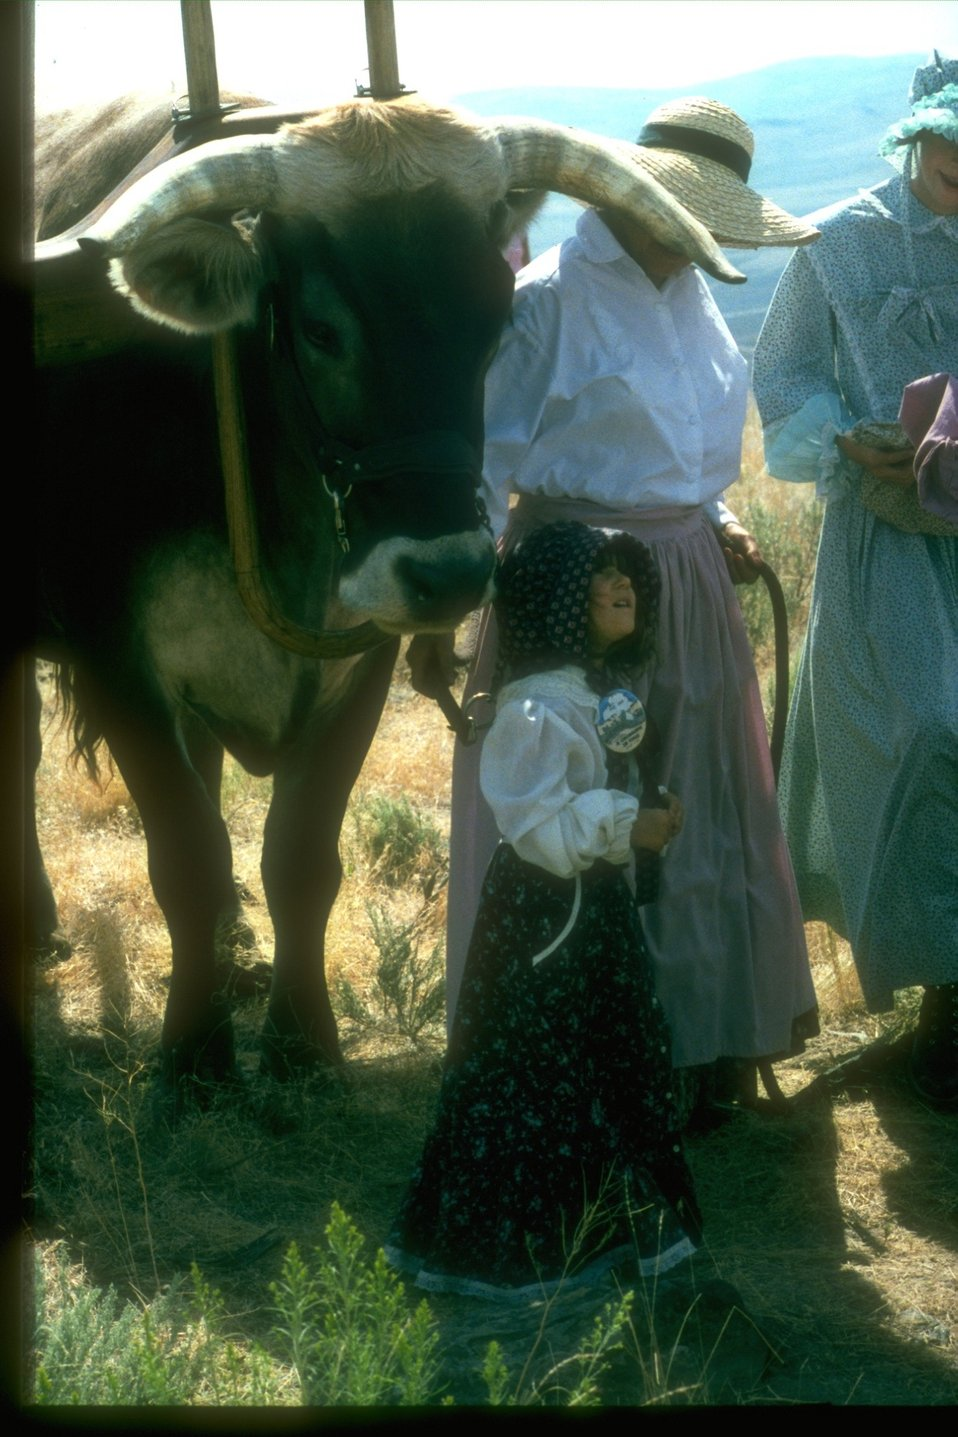 A living history with women and a child dressed in clothes from pioneer days.  A large ox is standing by the young girl.